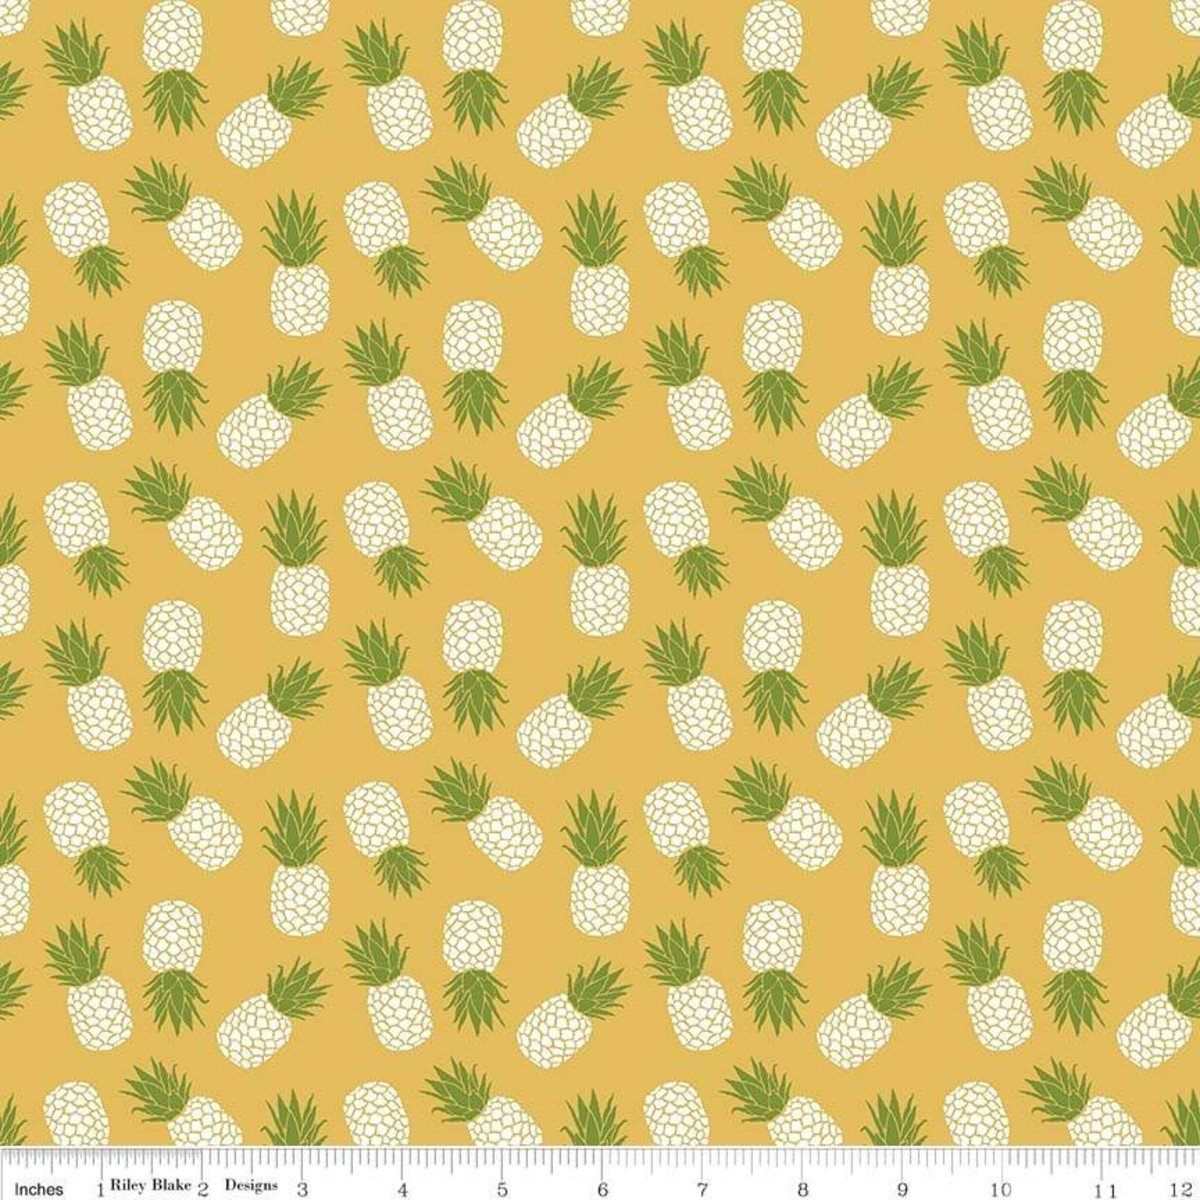 Mustard Yellow Green and White Tossed Havana Pineapple Jersey Knit Fabric, By Patty Young For Riley Blake - Raspberry Creek Fabrics Knit Fabric